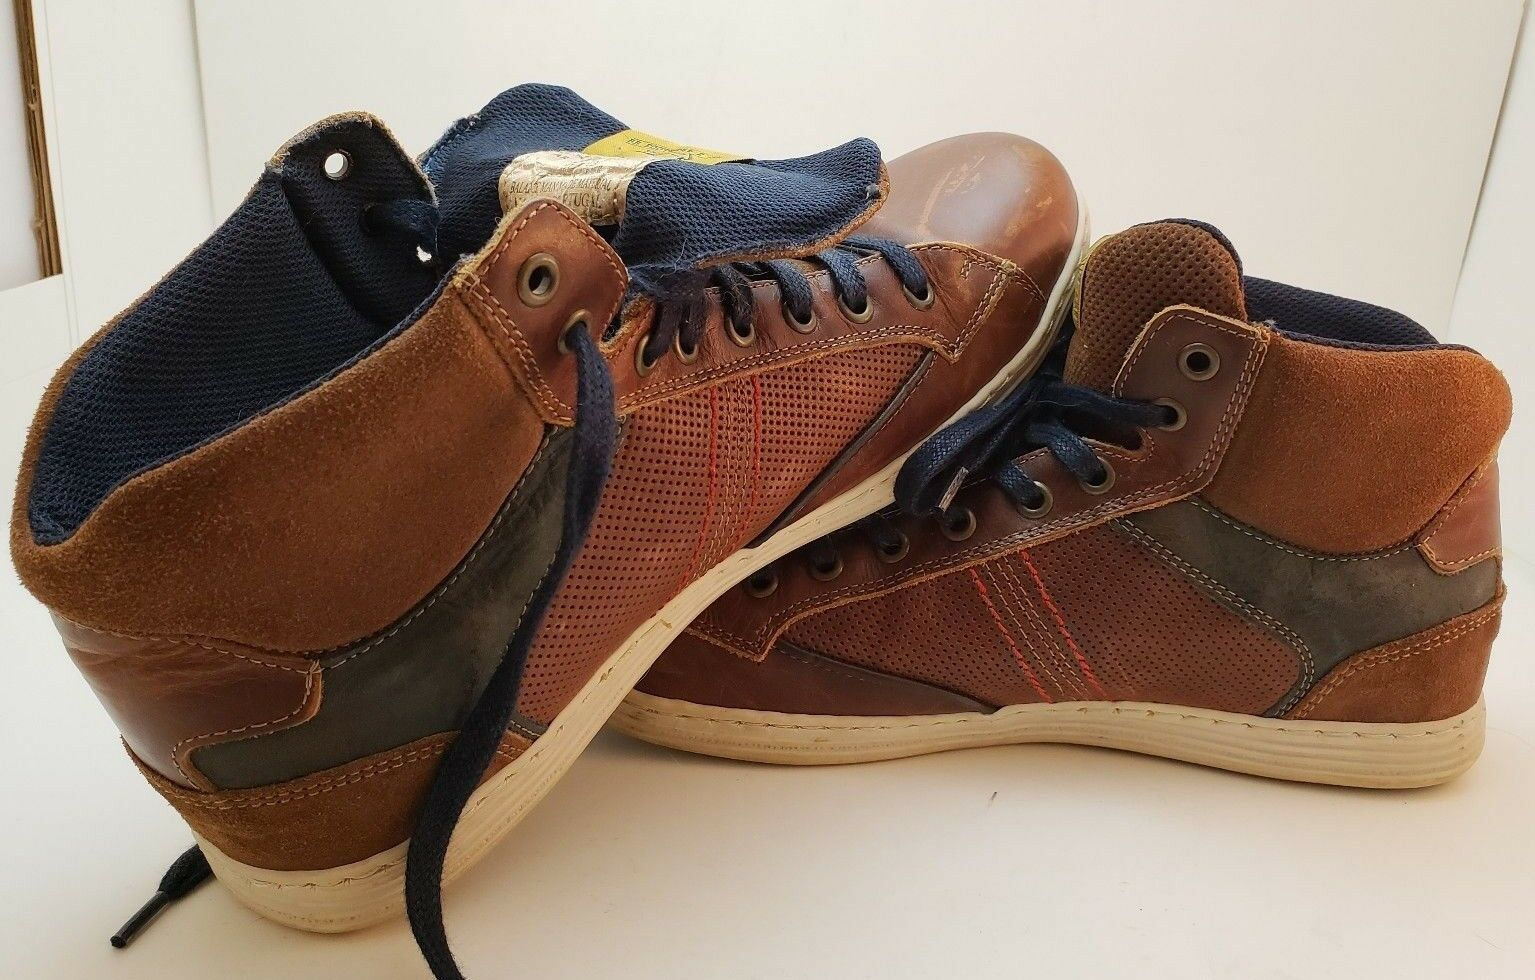 BULLBOXER MENS Brown & bluee boots, hightop sneaker, Chukka boots, shoes size 10